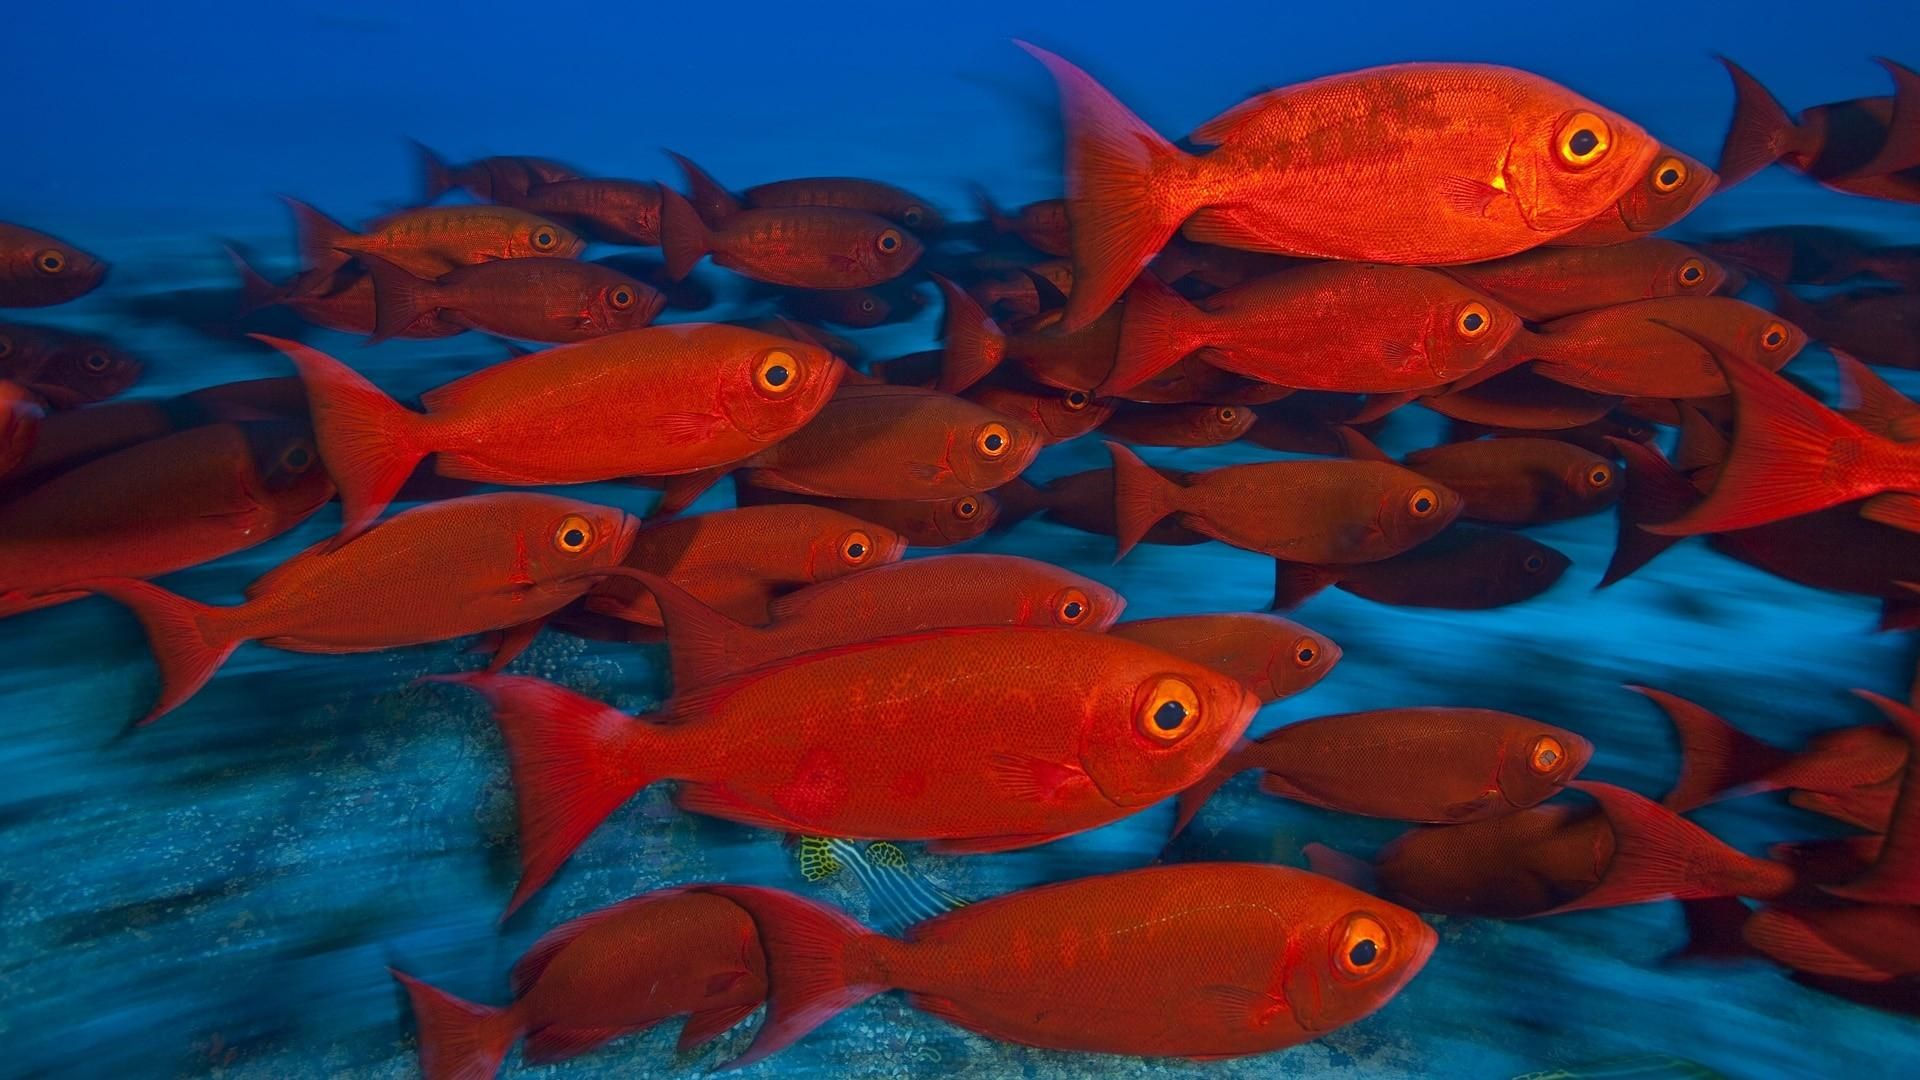 awesome animals fishes tropical red color eyes underwater sea ocean ...